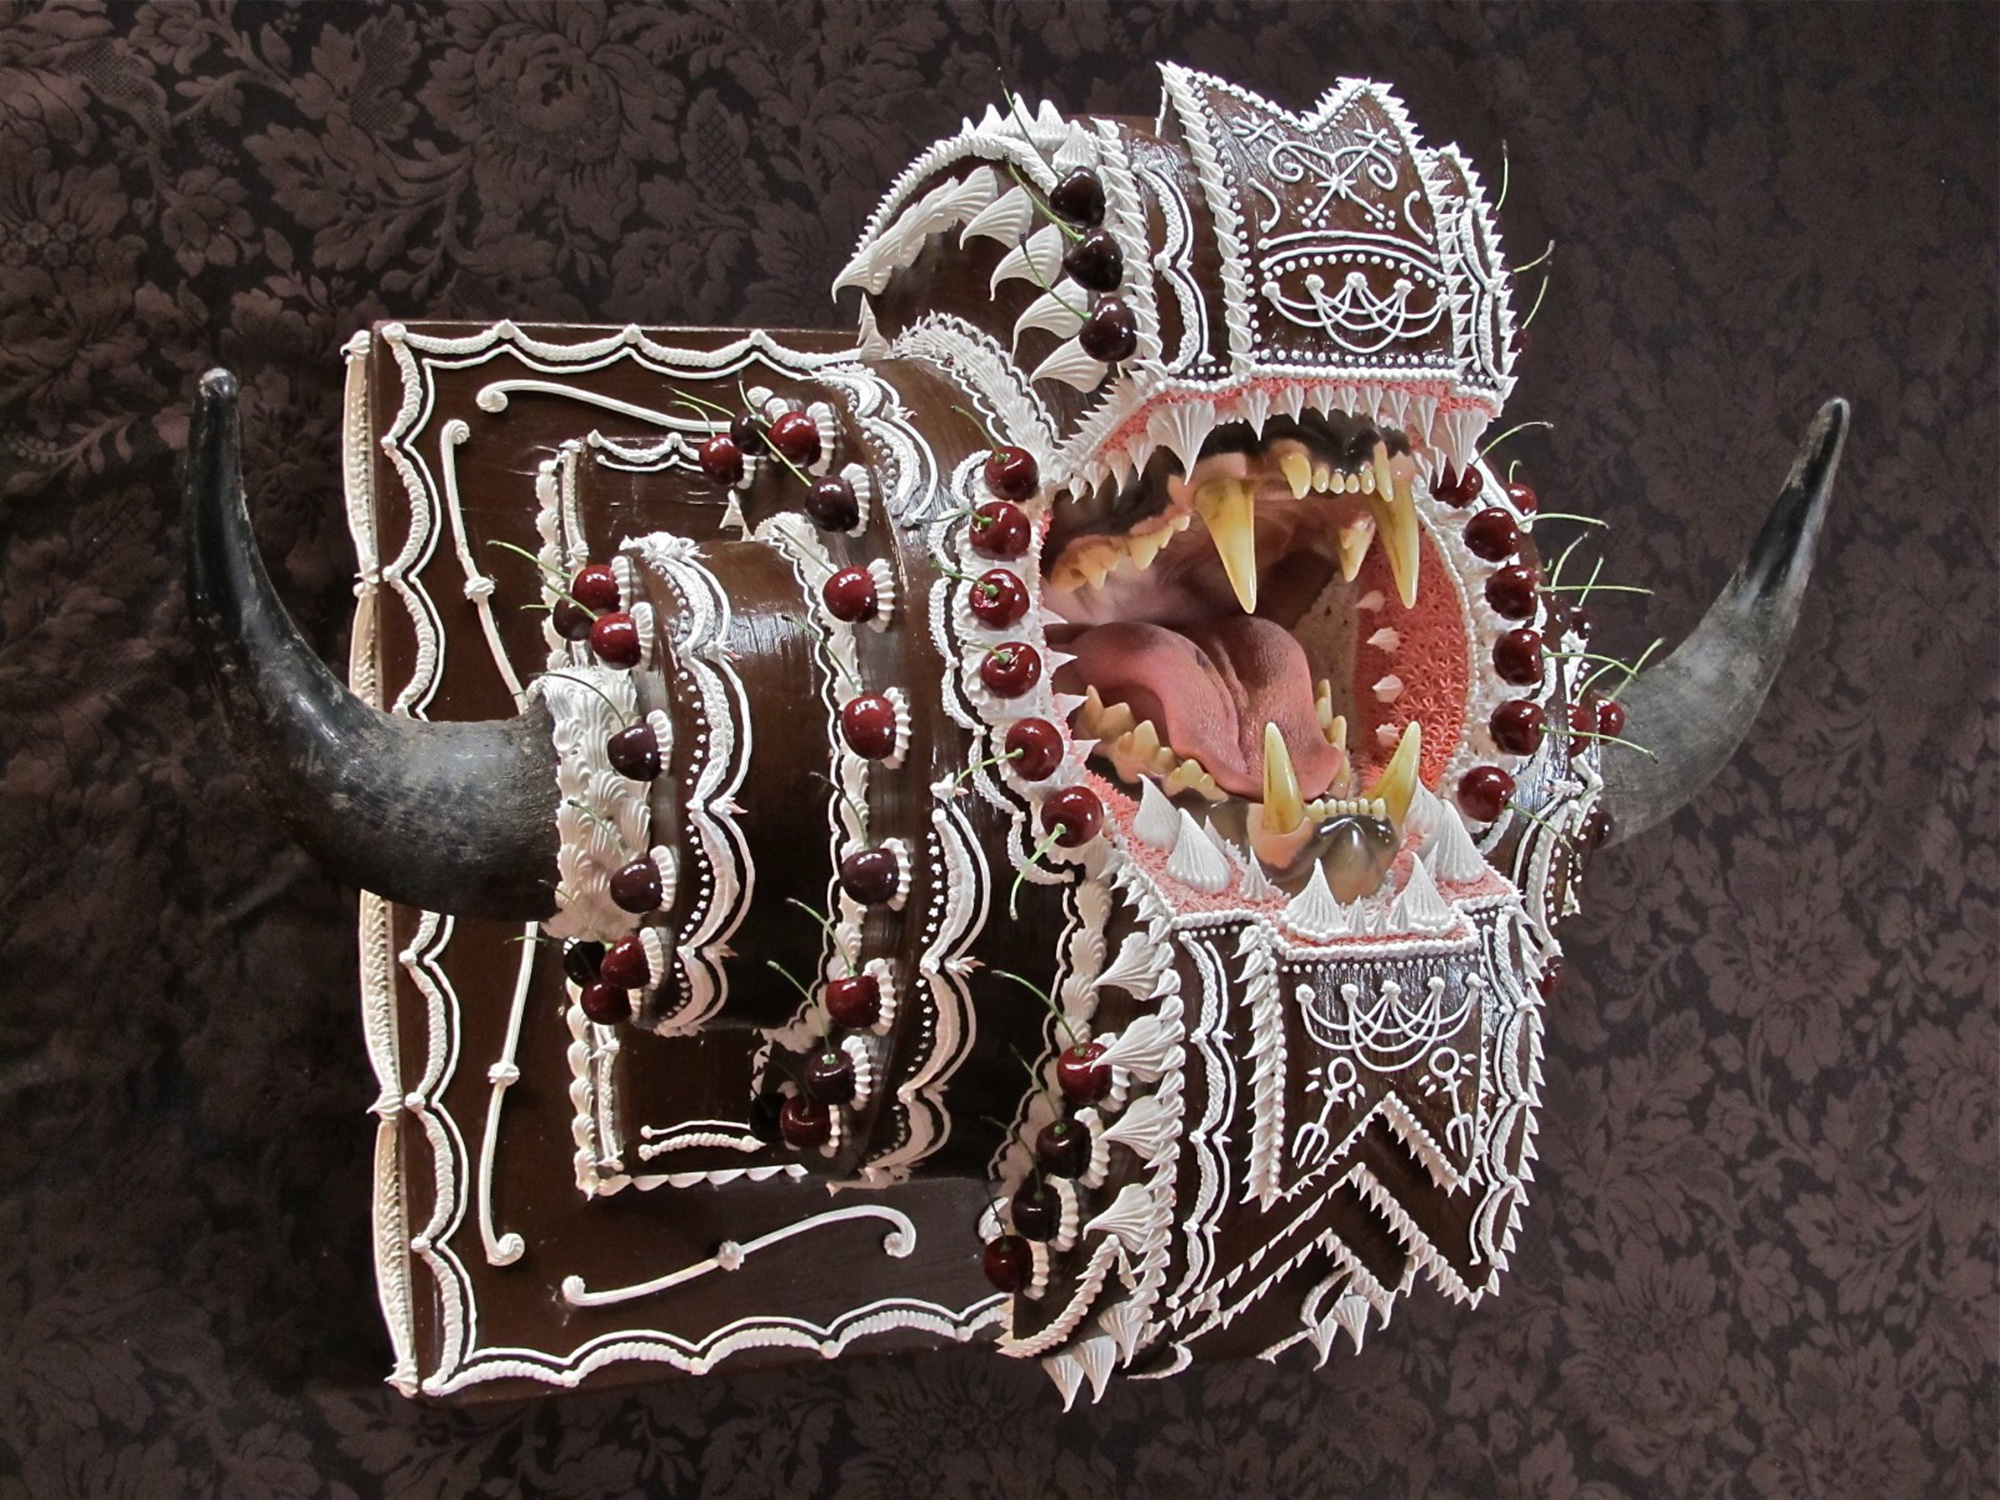 Scott Hove, Cake Fangs - taiwan sweet sculptures